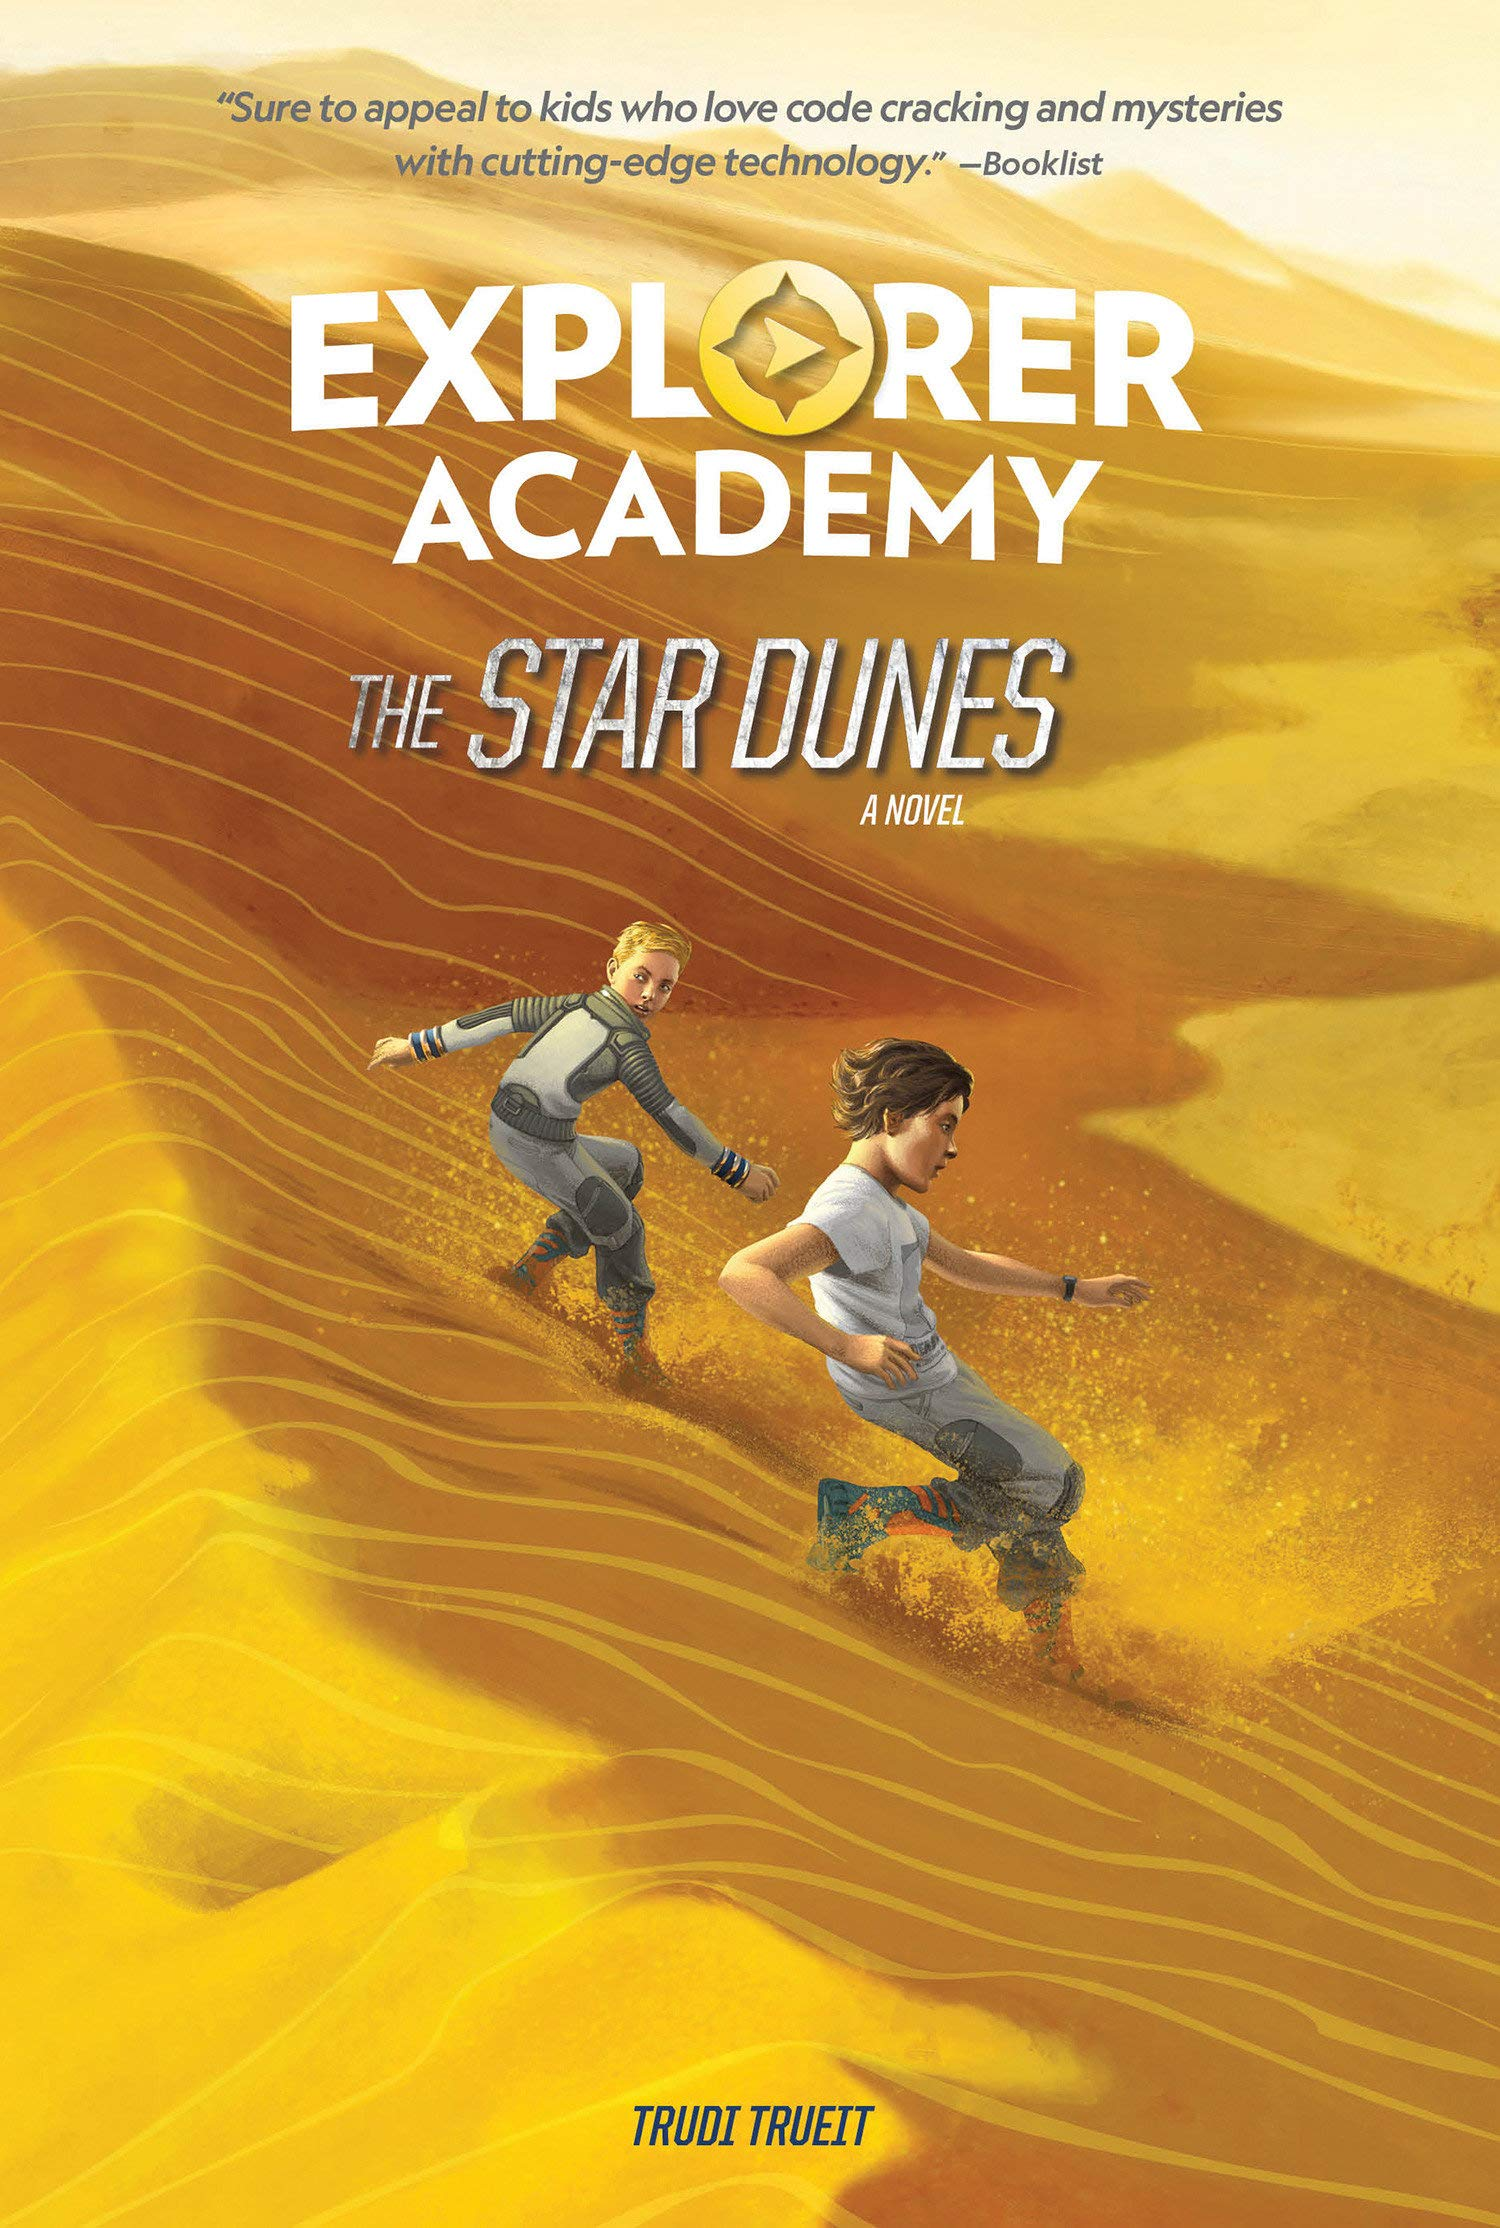 Explore The Star Dunes, the Latest from Explorer Academy